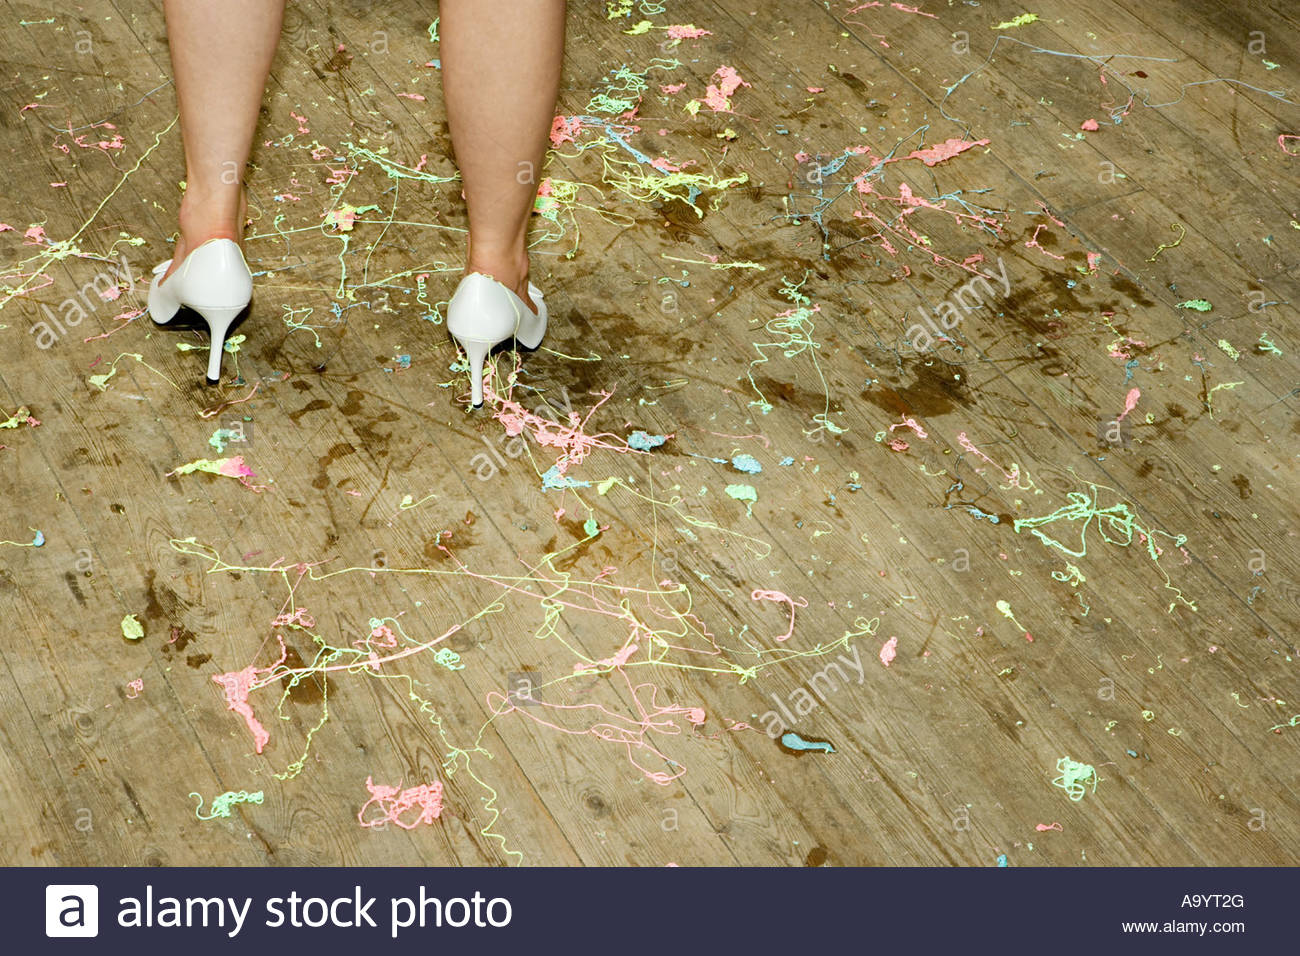 Woman standing on a messy floor - Stock Image